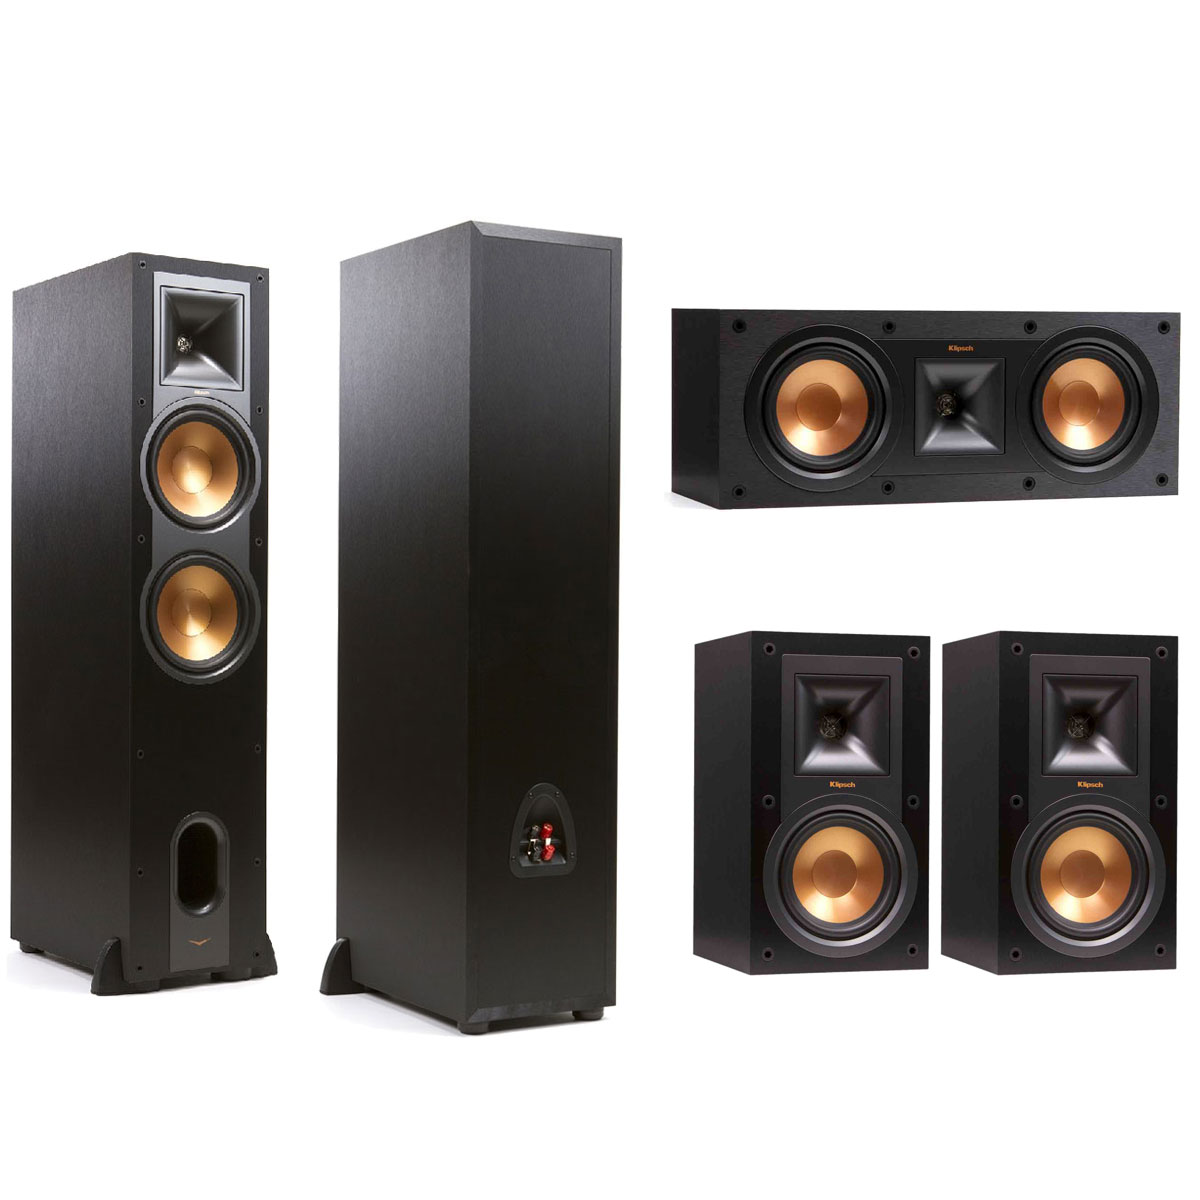 klipsch r 28f klipsch r 25c klipsch r 15m enceintes hifi klipsch sur. Black Bedroom Furniture Sets. Home Design Ideas